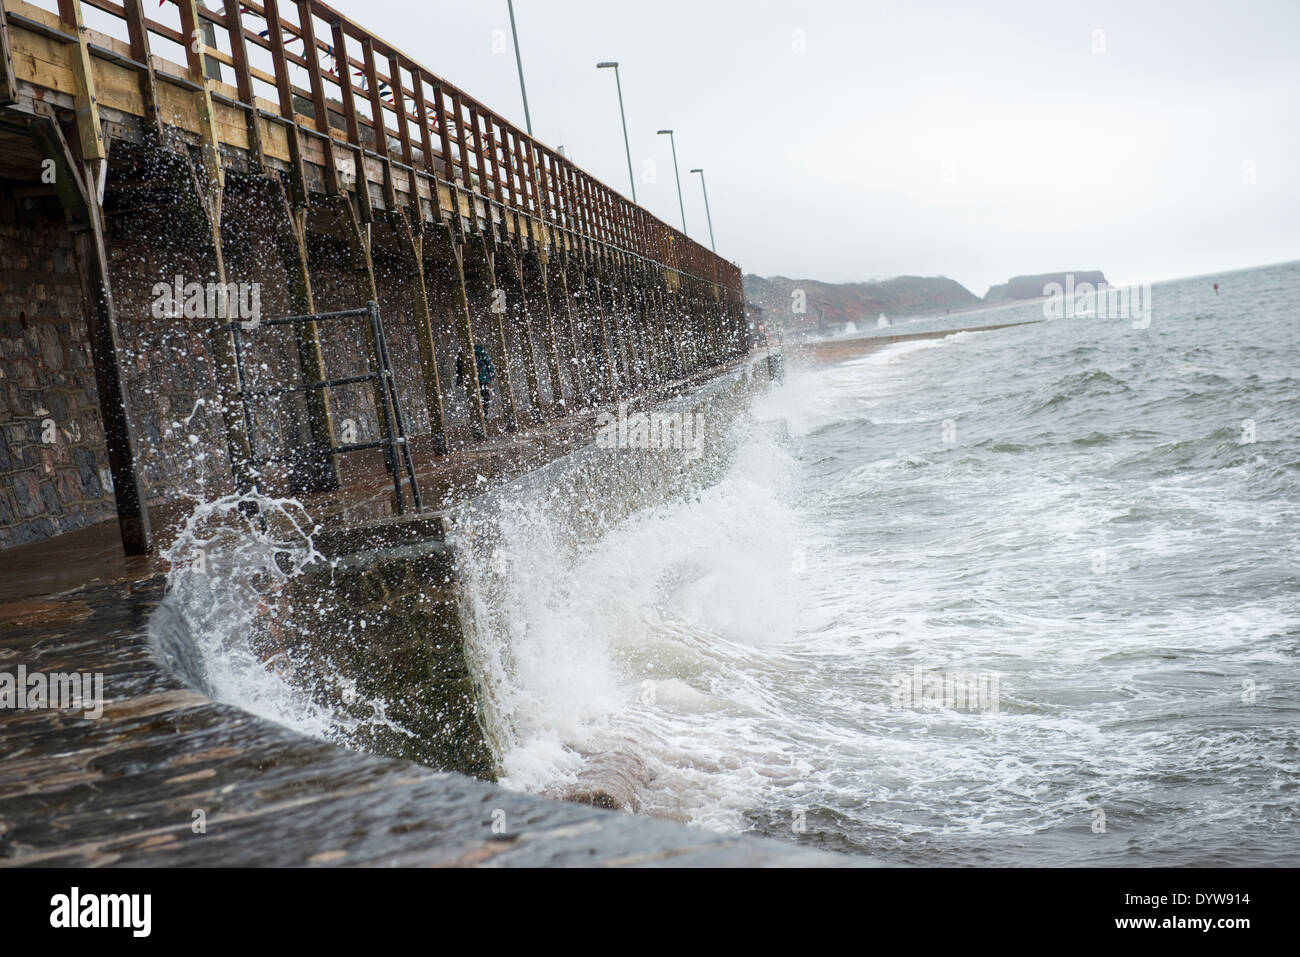 Sea defences below the newly re-opened railway line and station in Dawlish, Devon - Stock Image